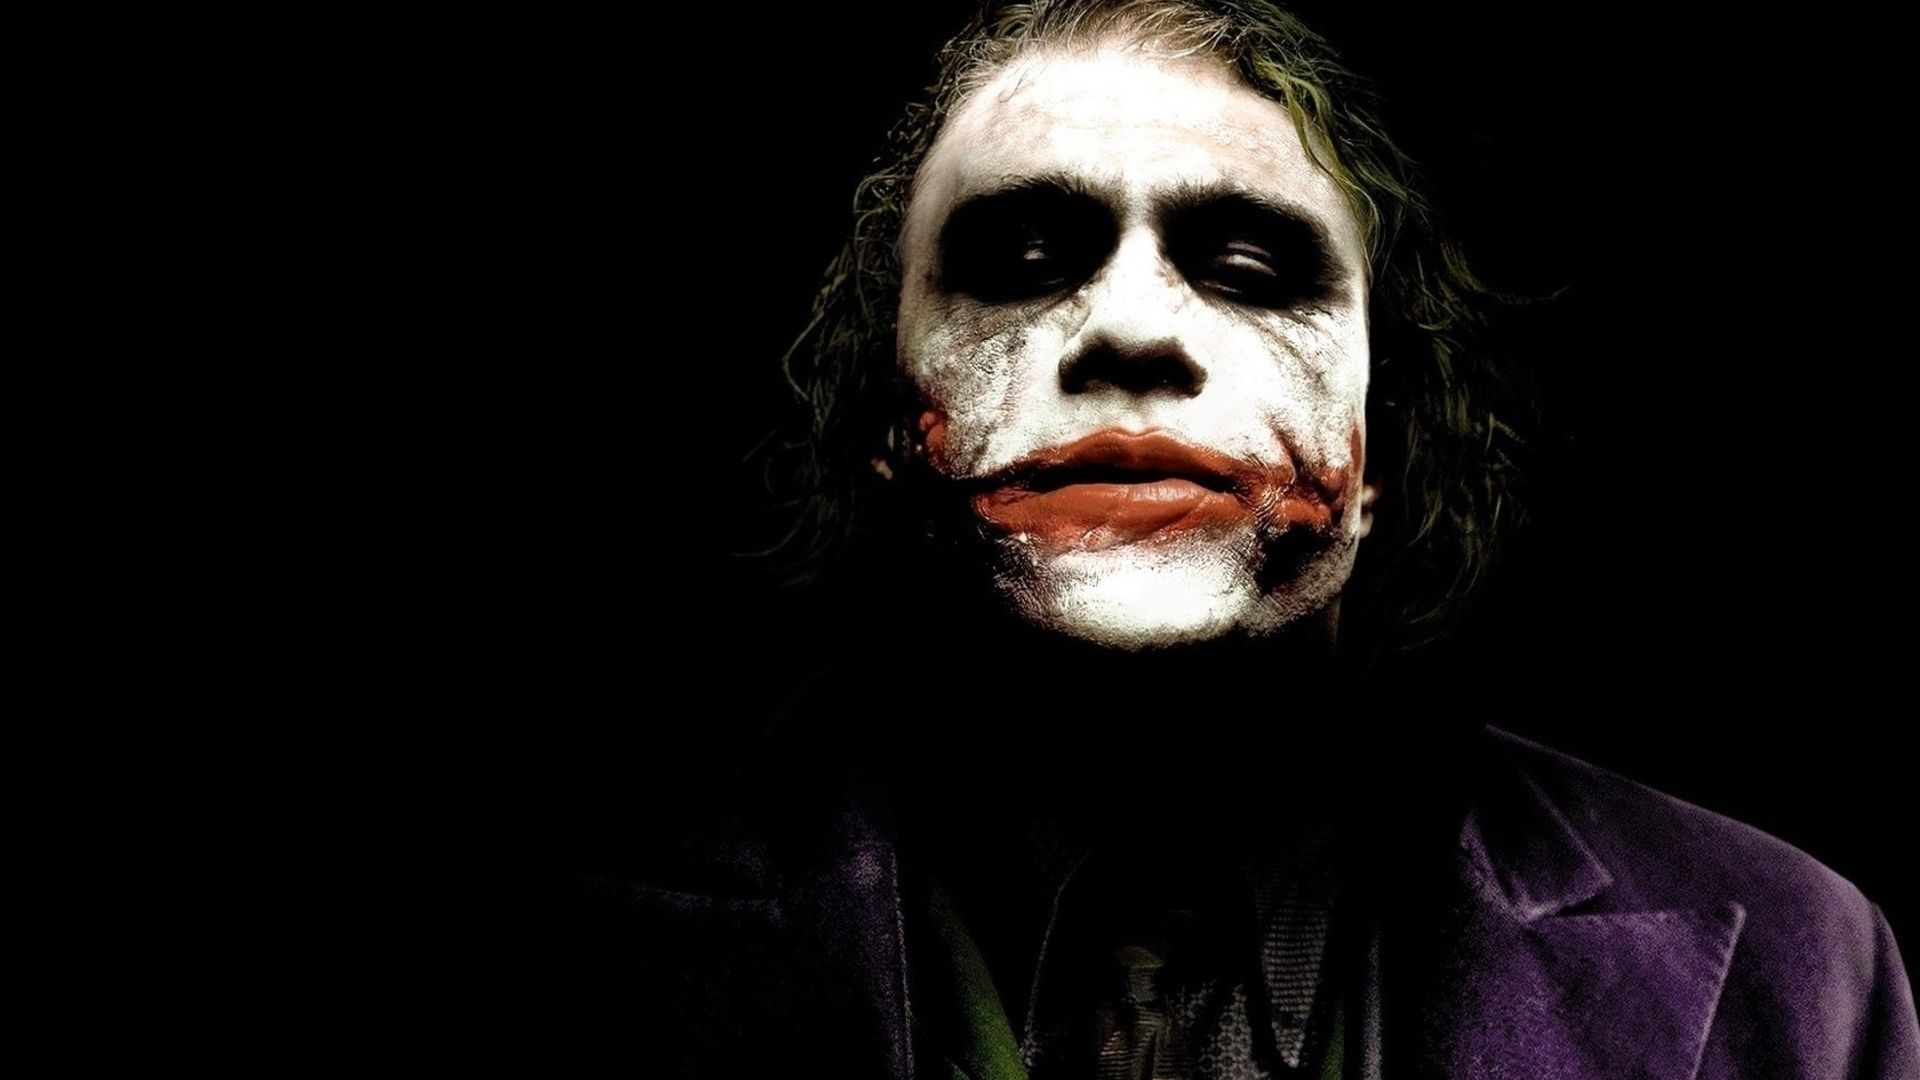 hd heath ledger joker wallpaper hd heath ledger joker wallpaper was